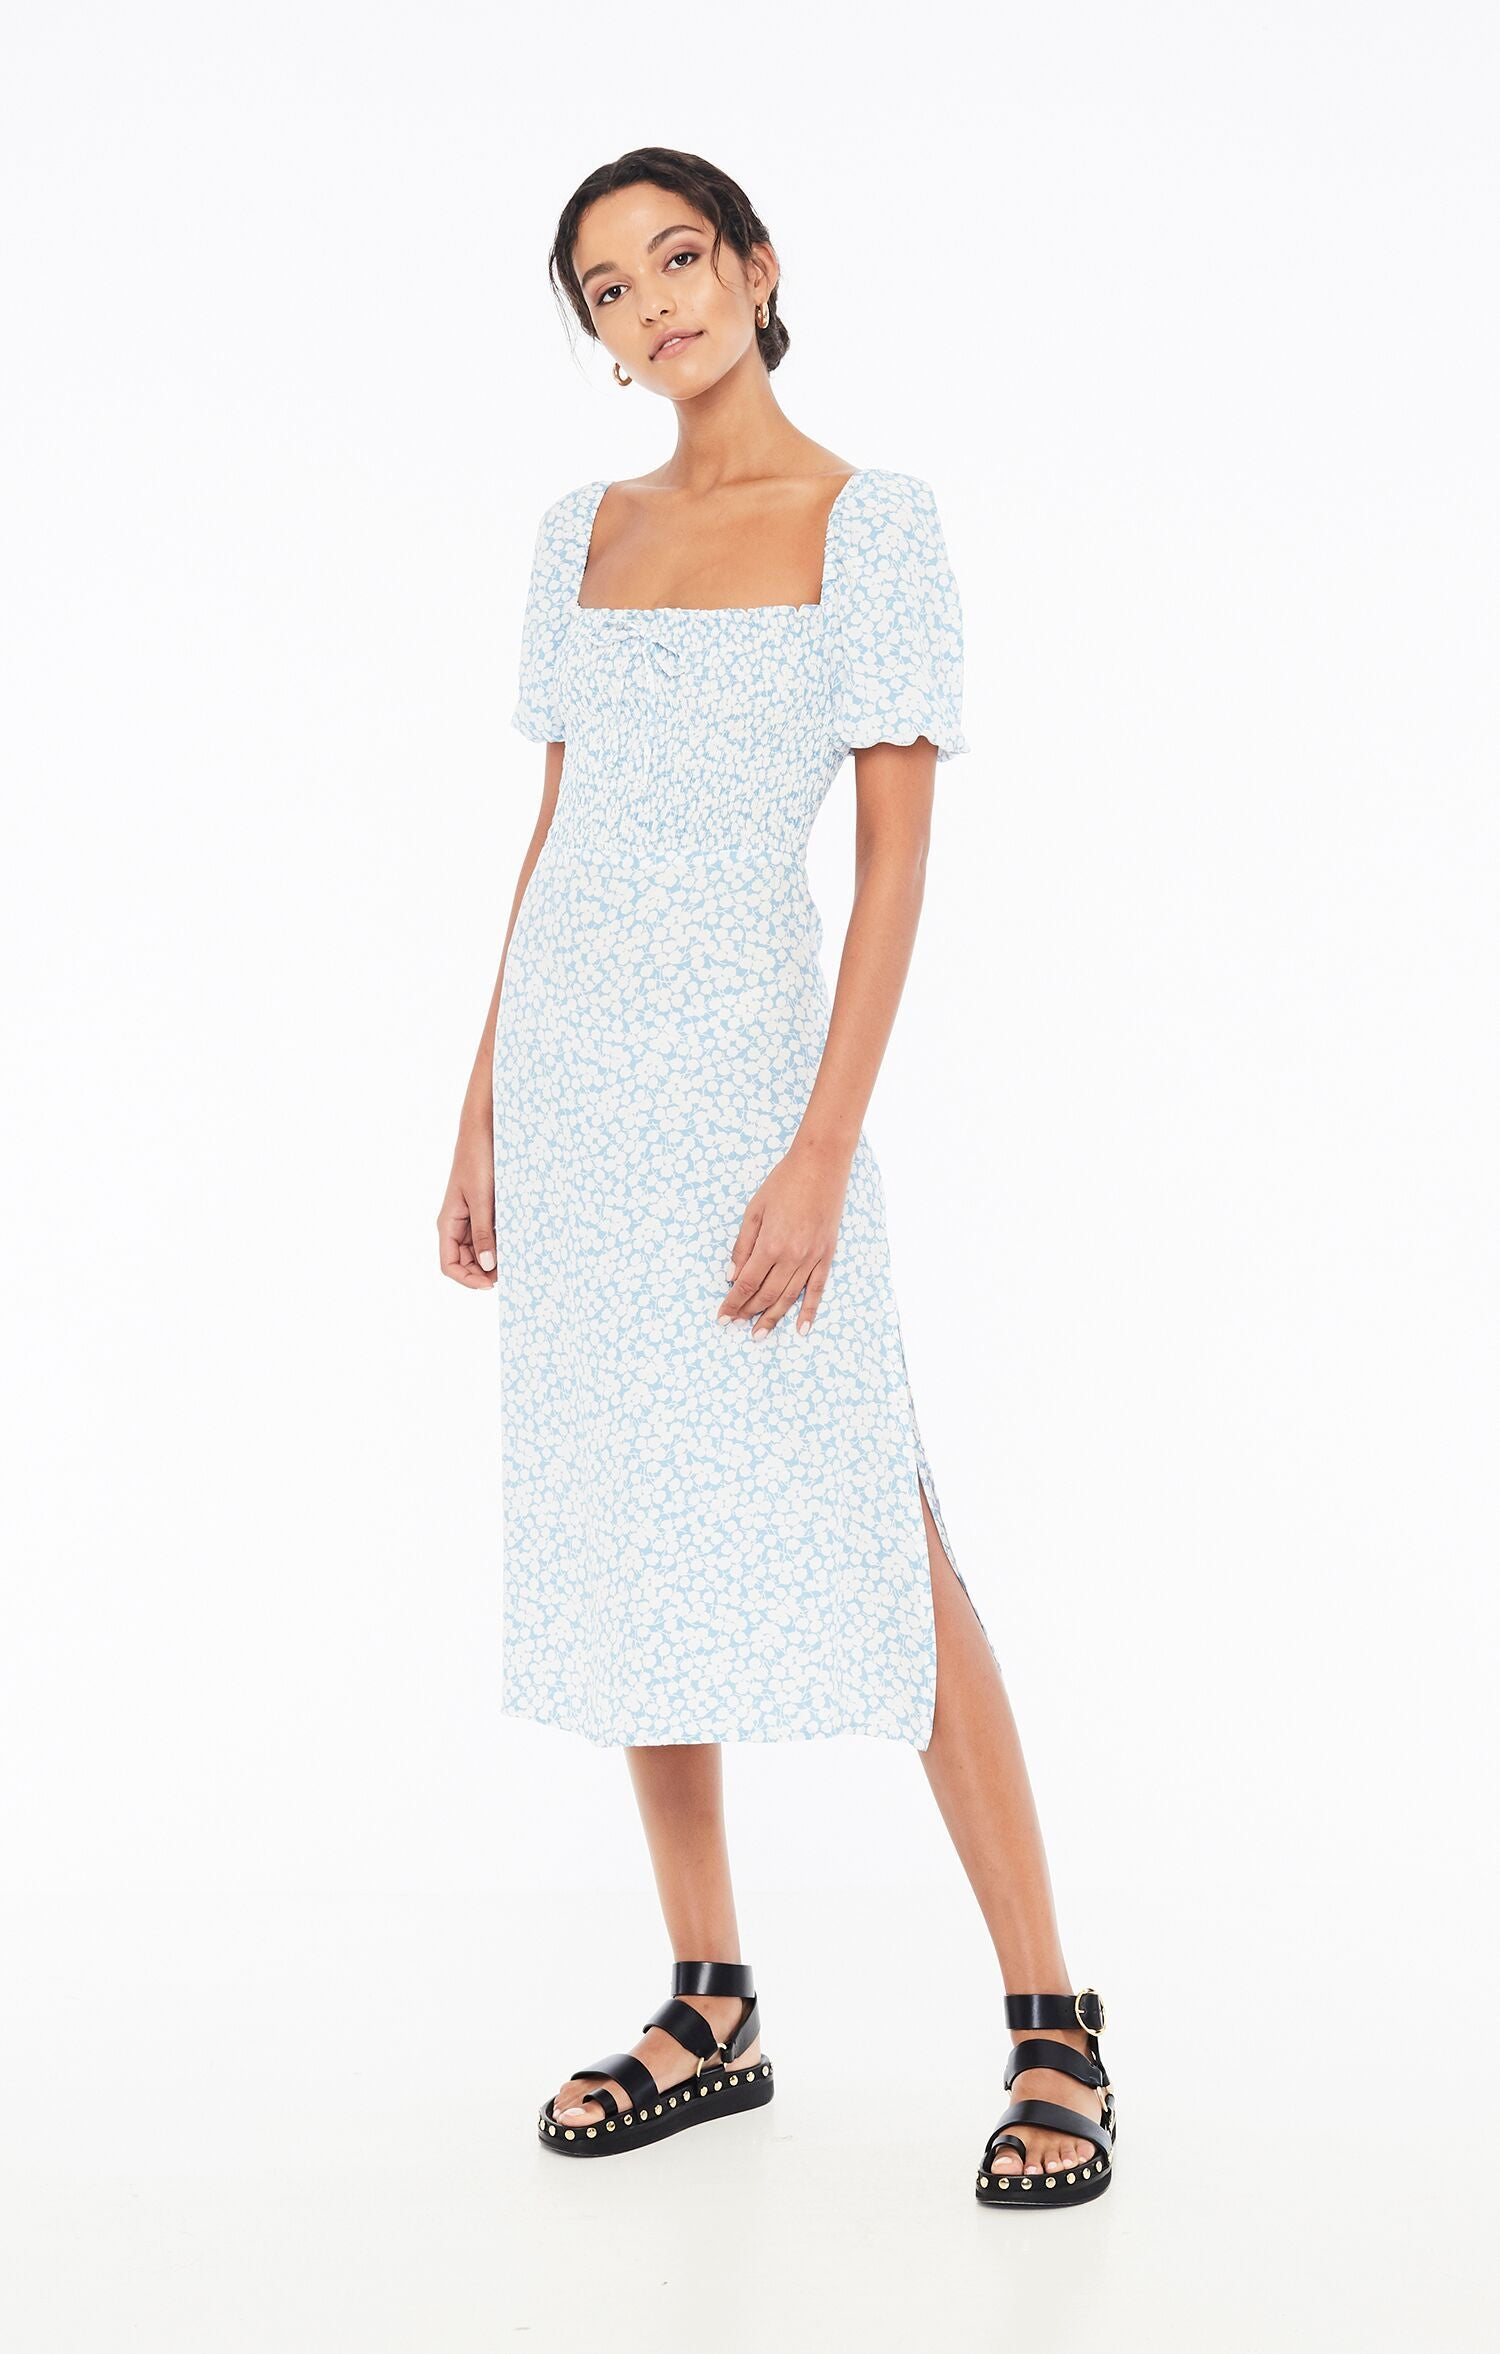 Load image into Gallery viewer, Majorelle Midi Dress in Bella Floral Print Riviera Blue by Faithfull The Brand | Womens Midi Dresses